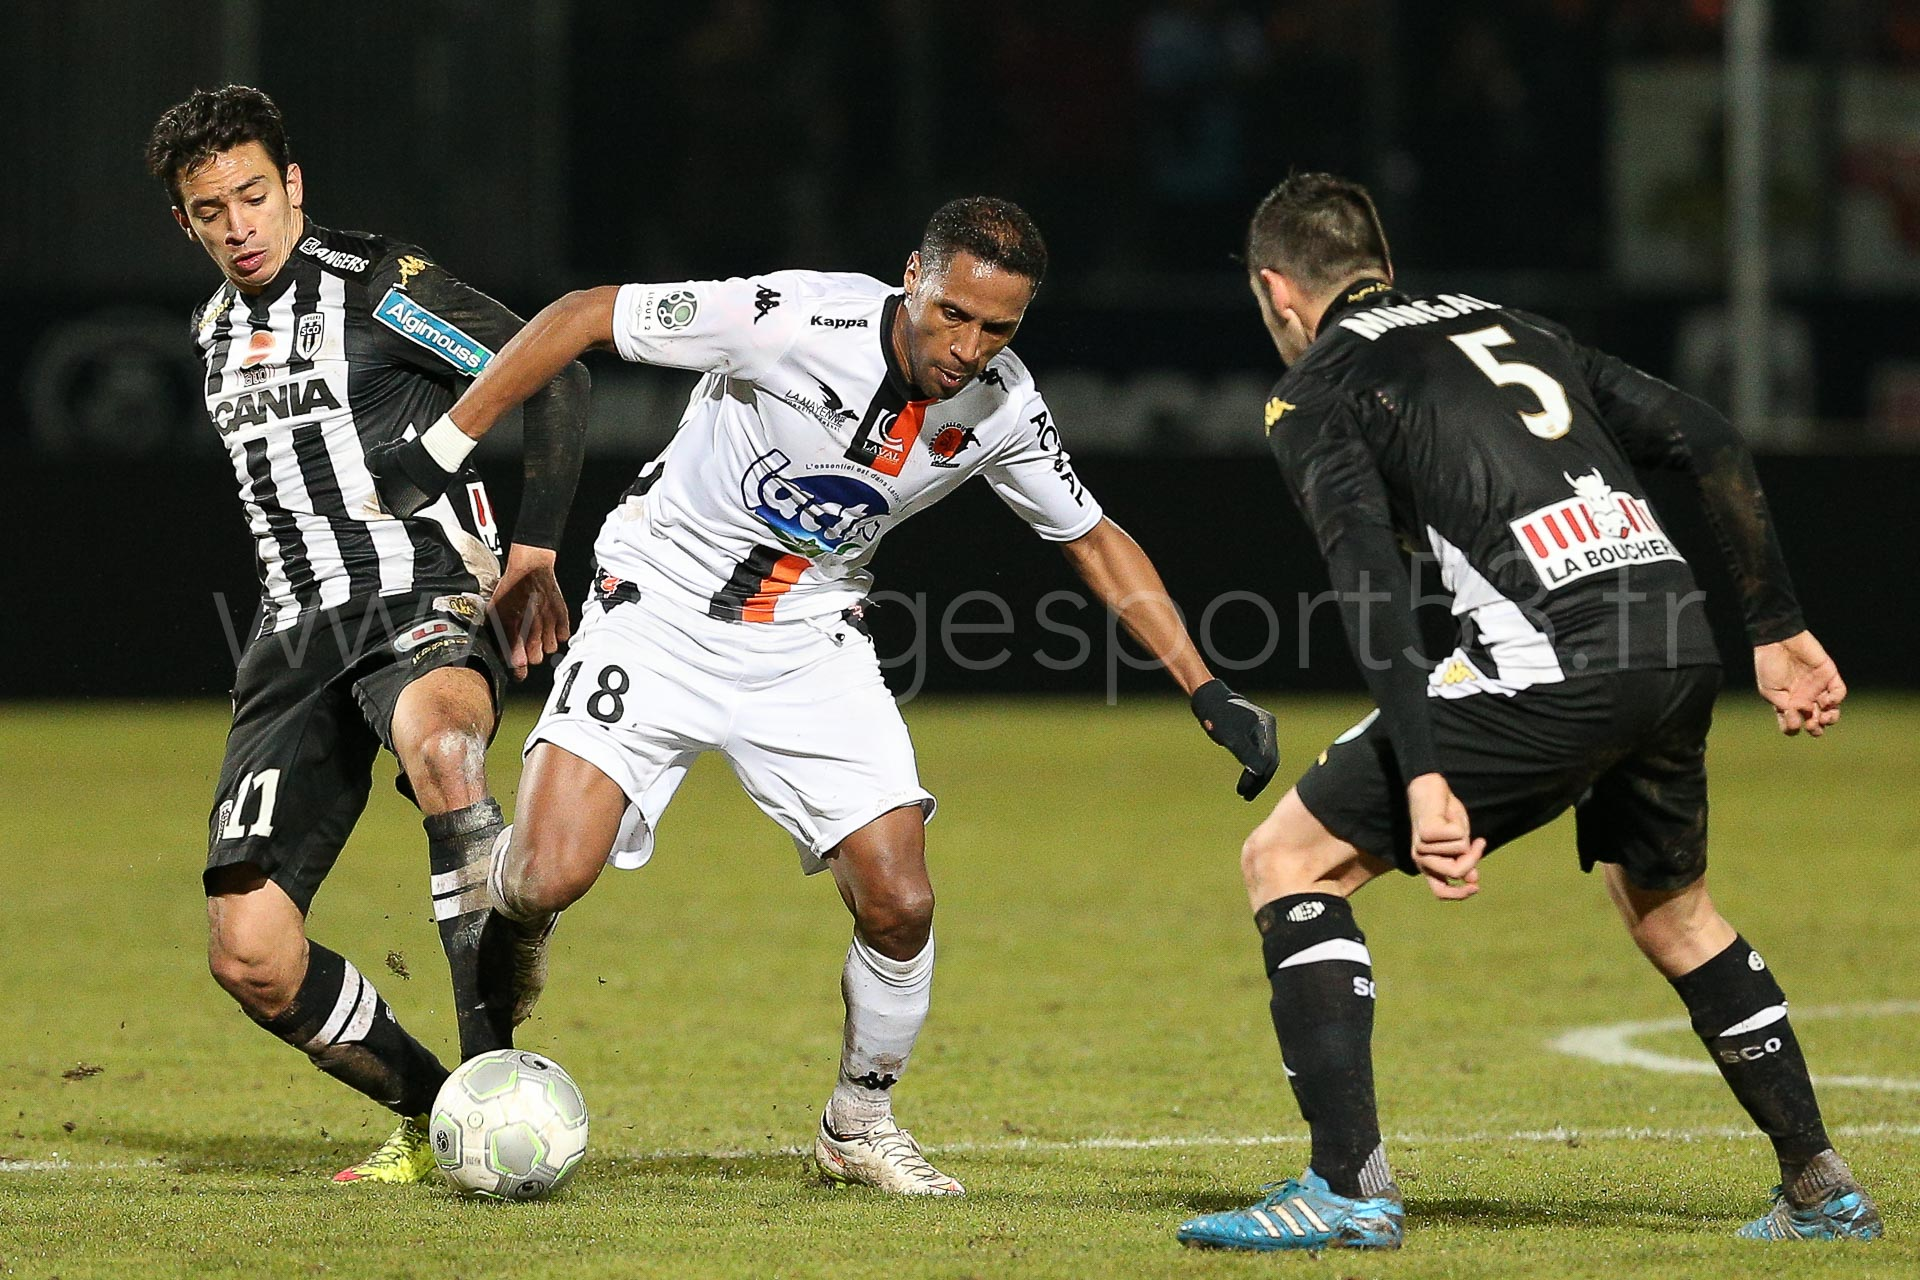 NG-Ligue2-1415-J25-Angers-Laval_18